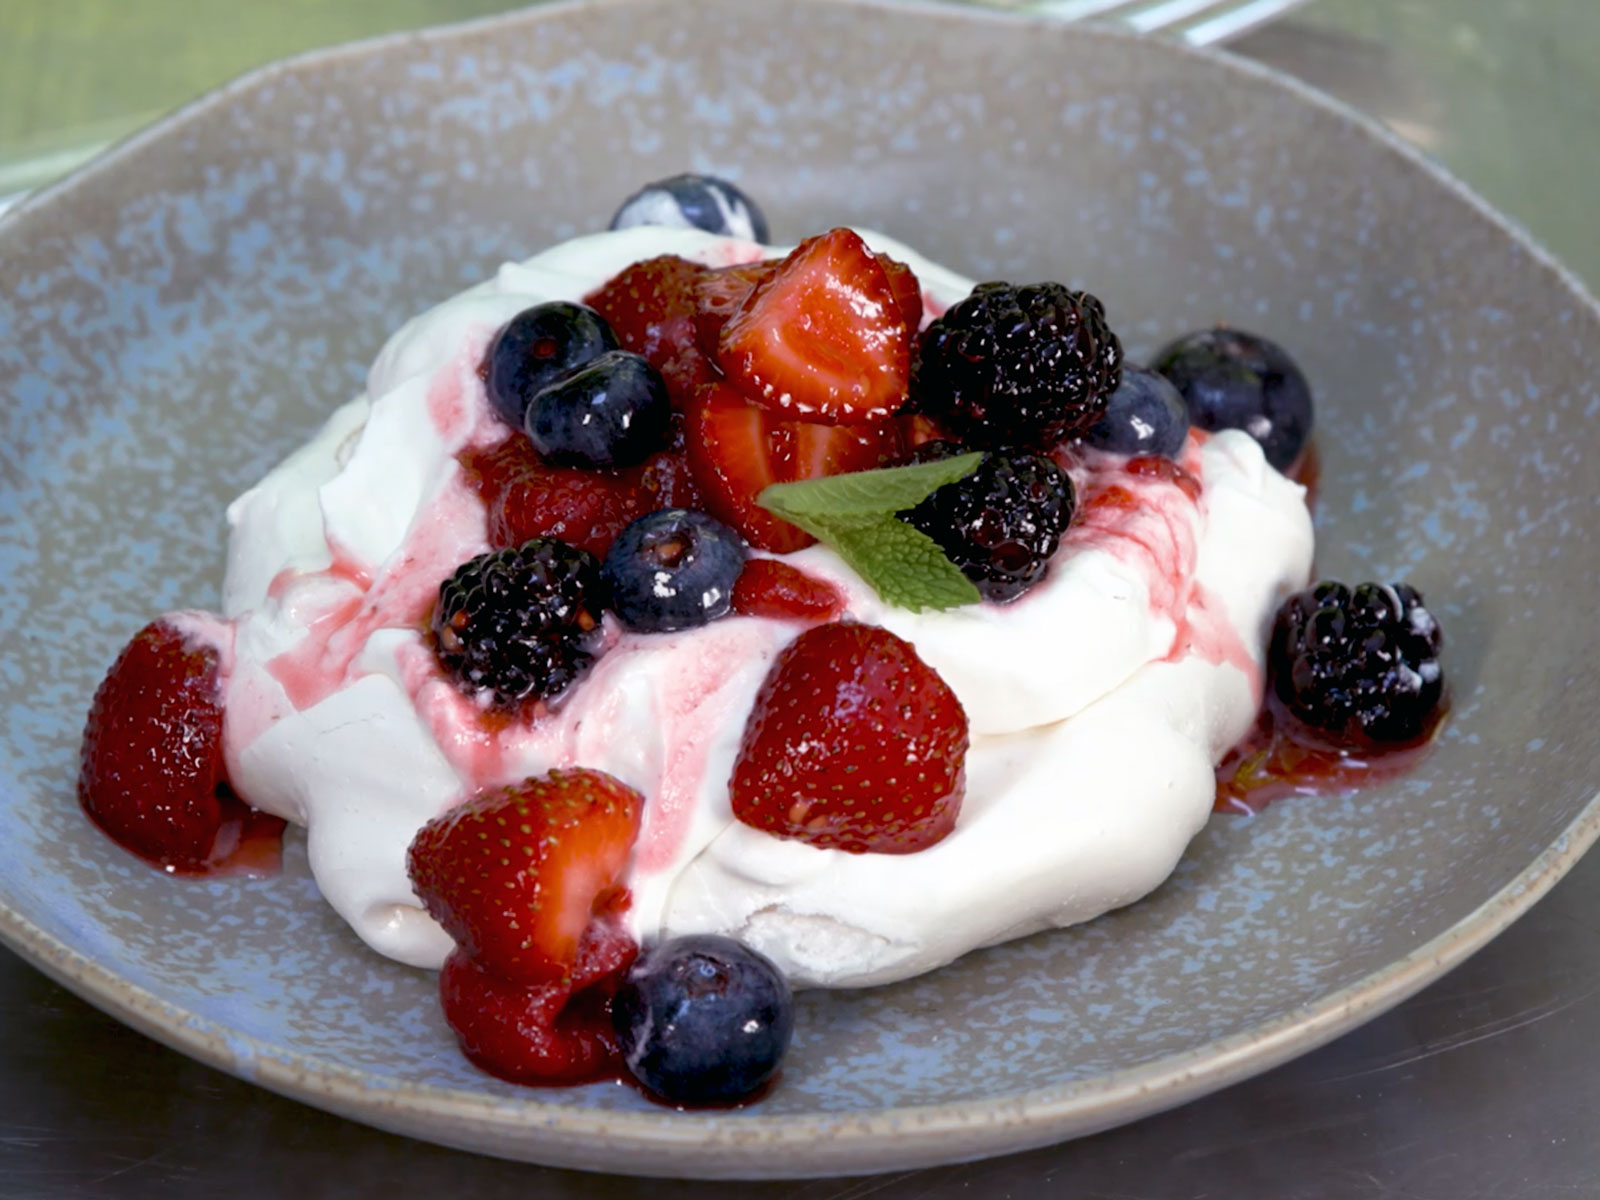 mad-genius-pavlova-ft-blog0819.jpg